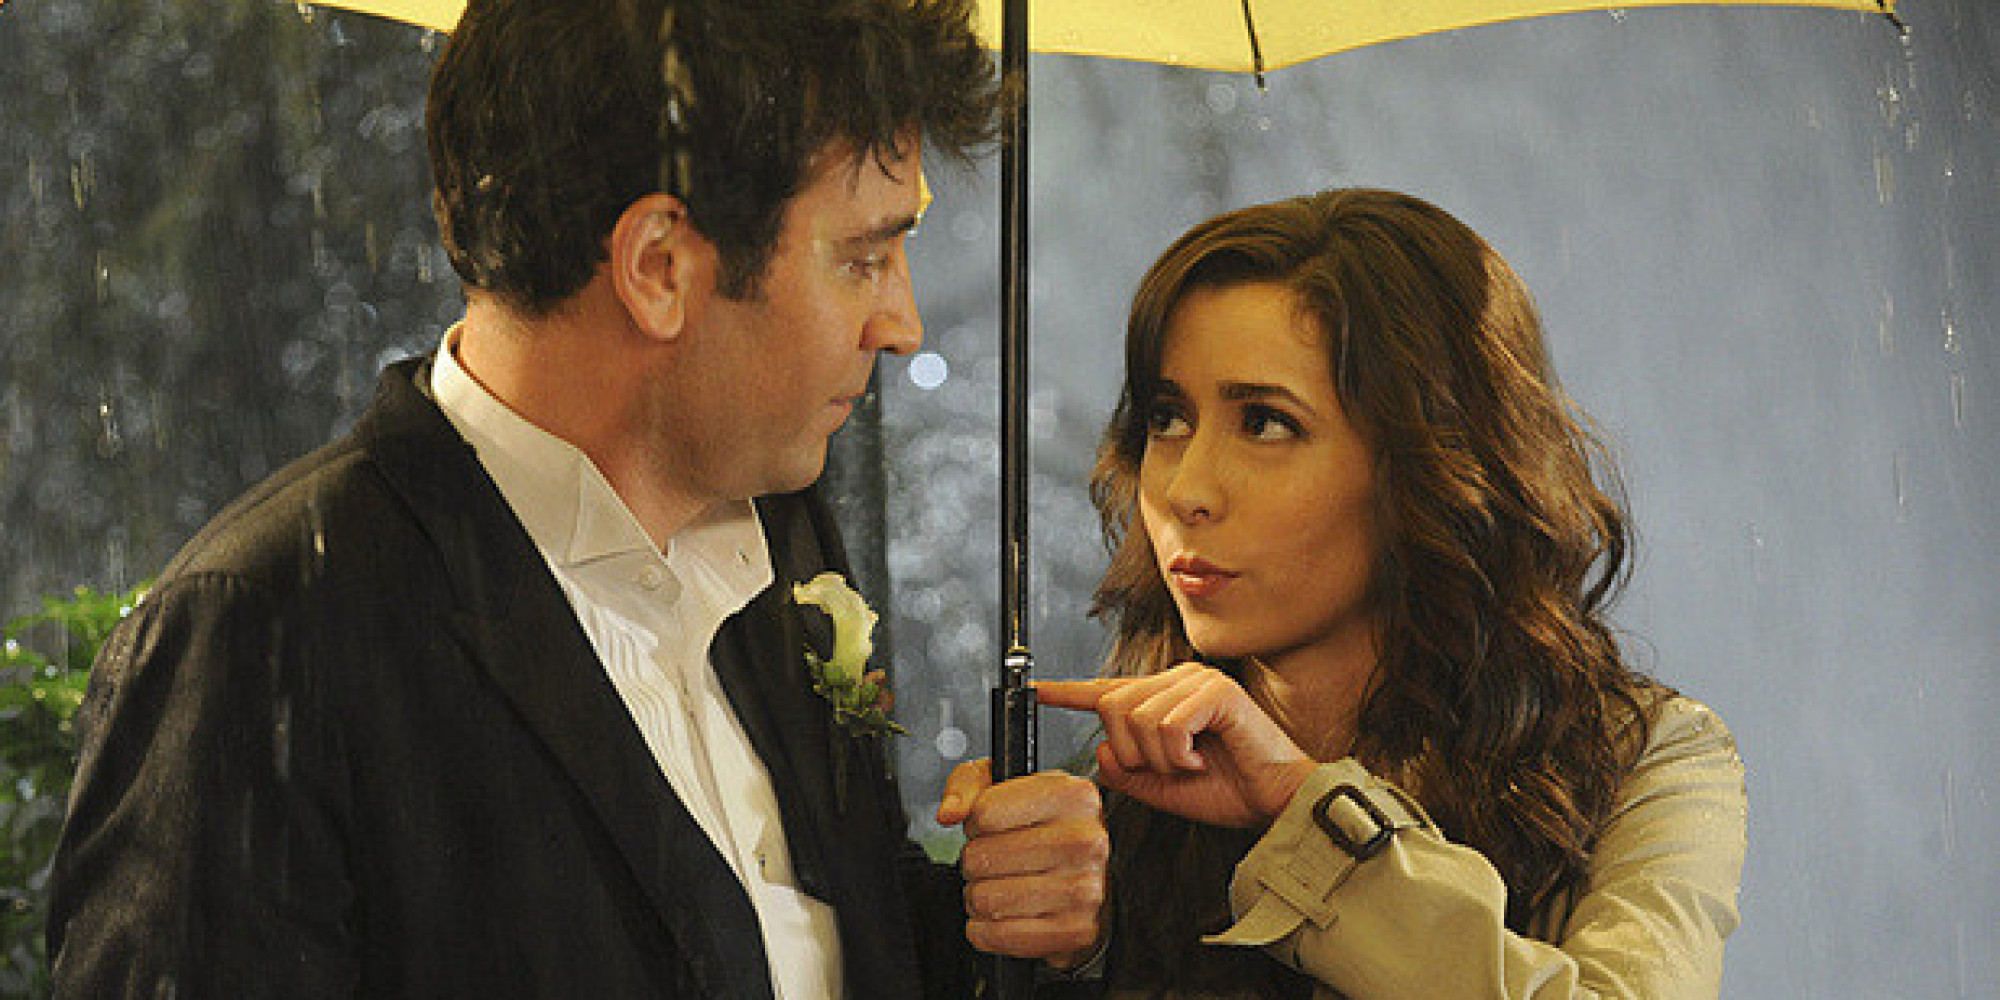 28 Facts about How I Met Your Mother that are Legen DARY